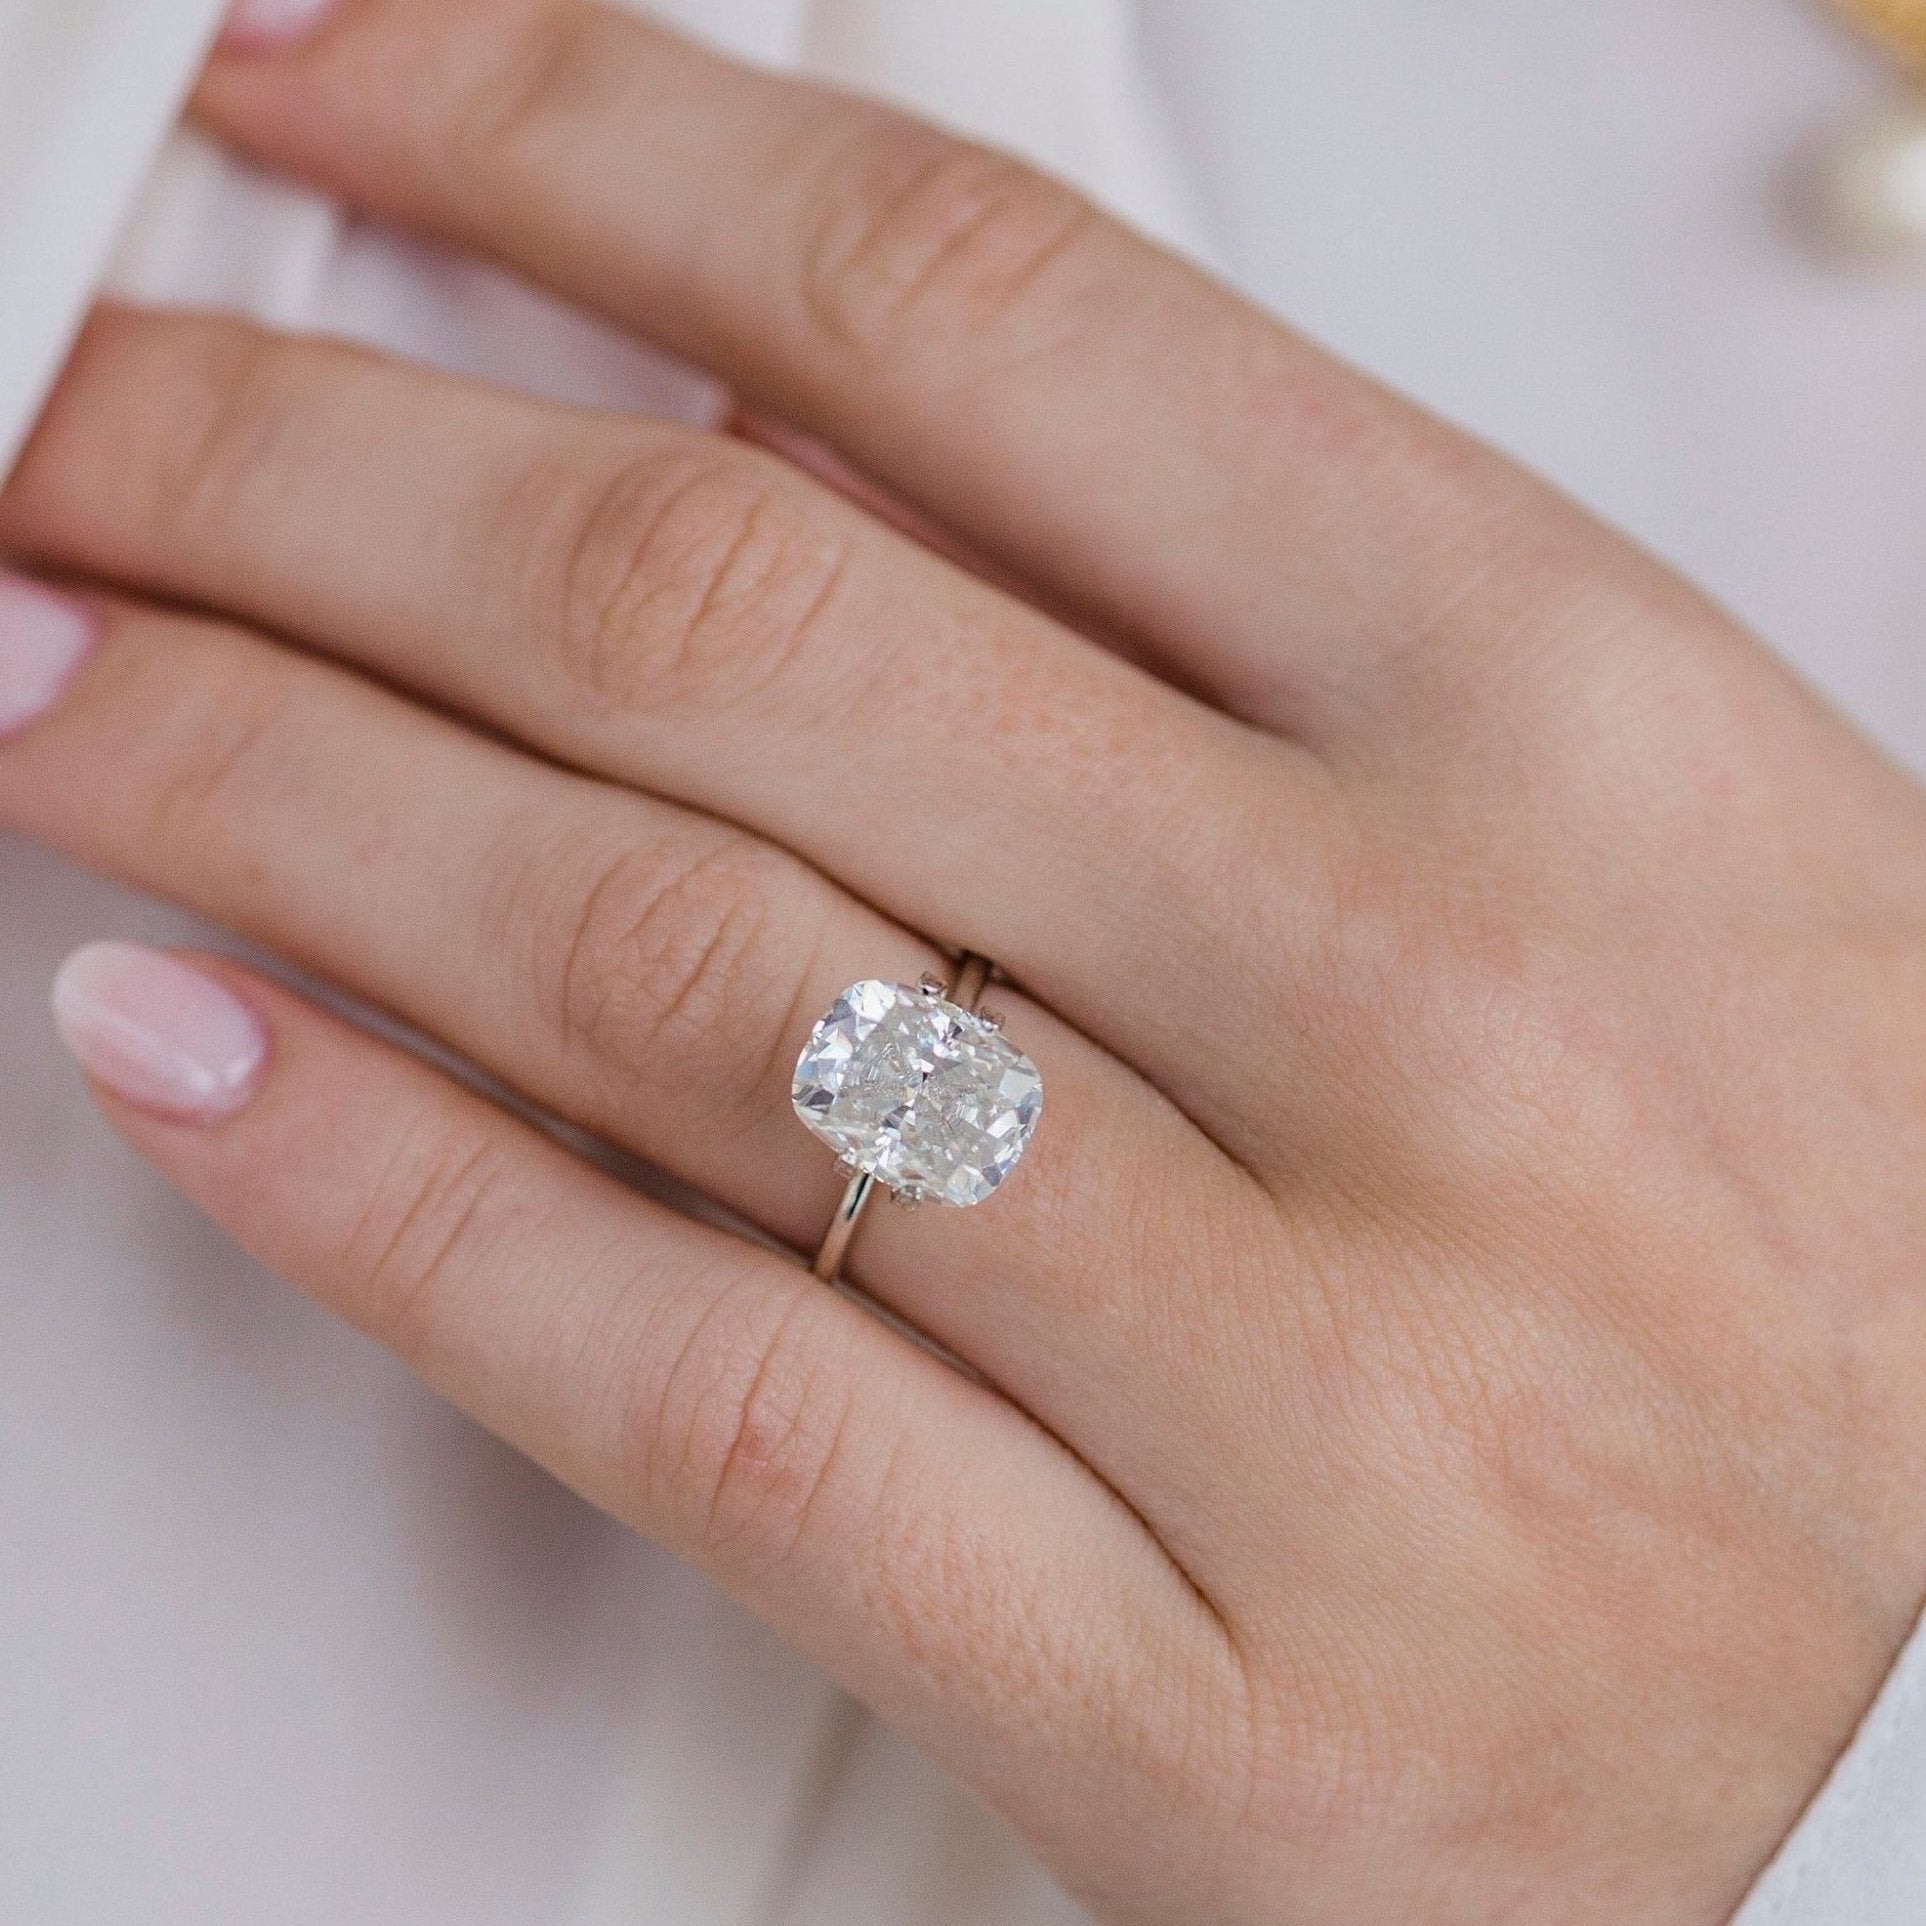 5 Carat Modern White Elongated Crushed Ice Cushion Cut